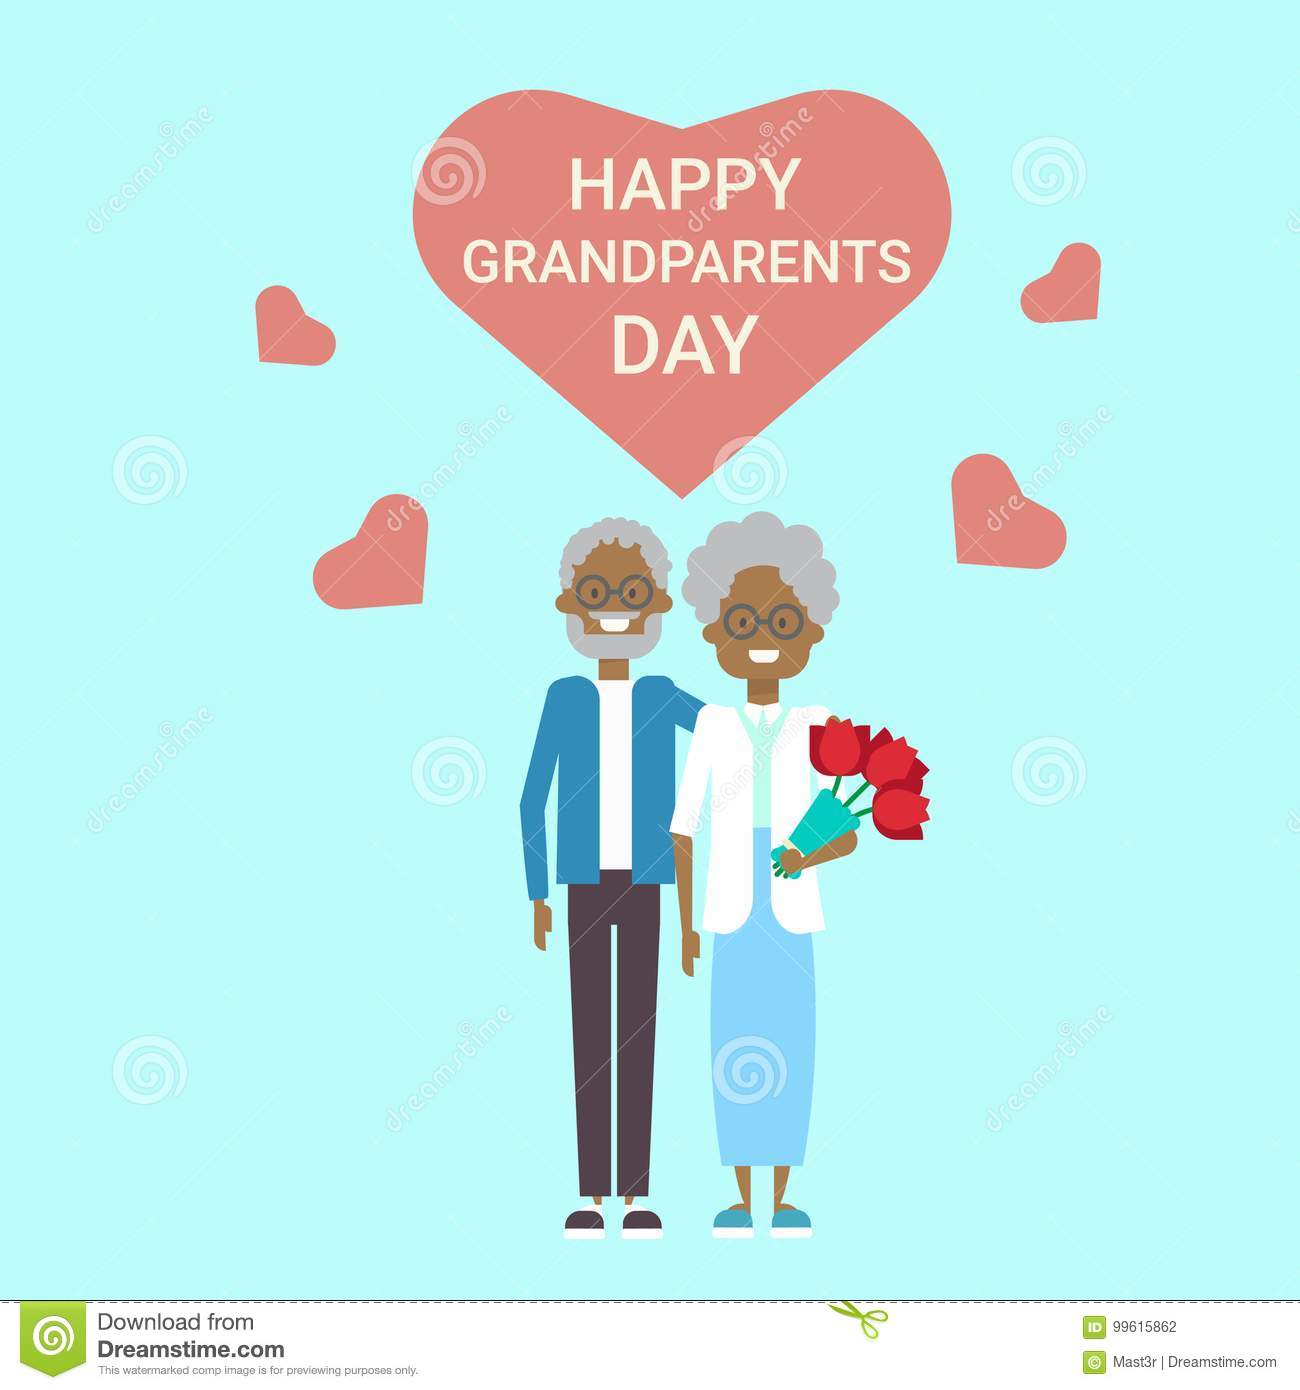 Happy grandparents day greeting card holiday banner african royalty free vector download happy grandparents day greeting card holiday banner african american kristyandbryce Images